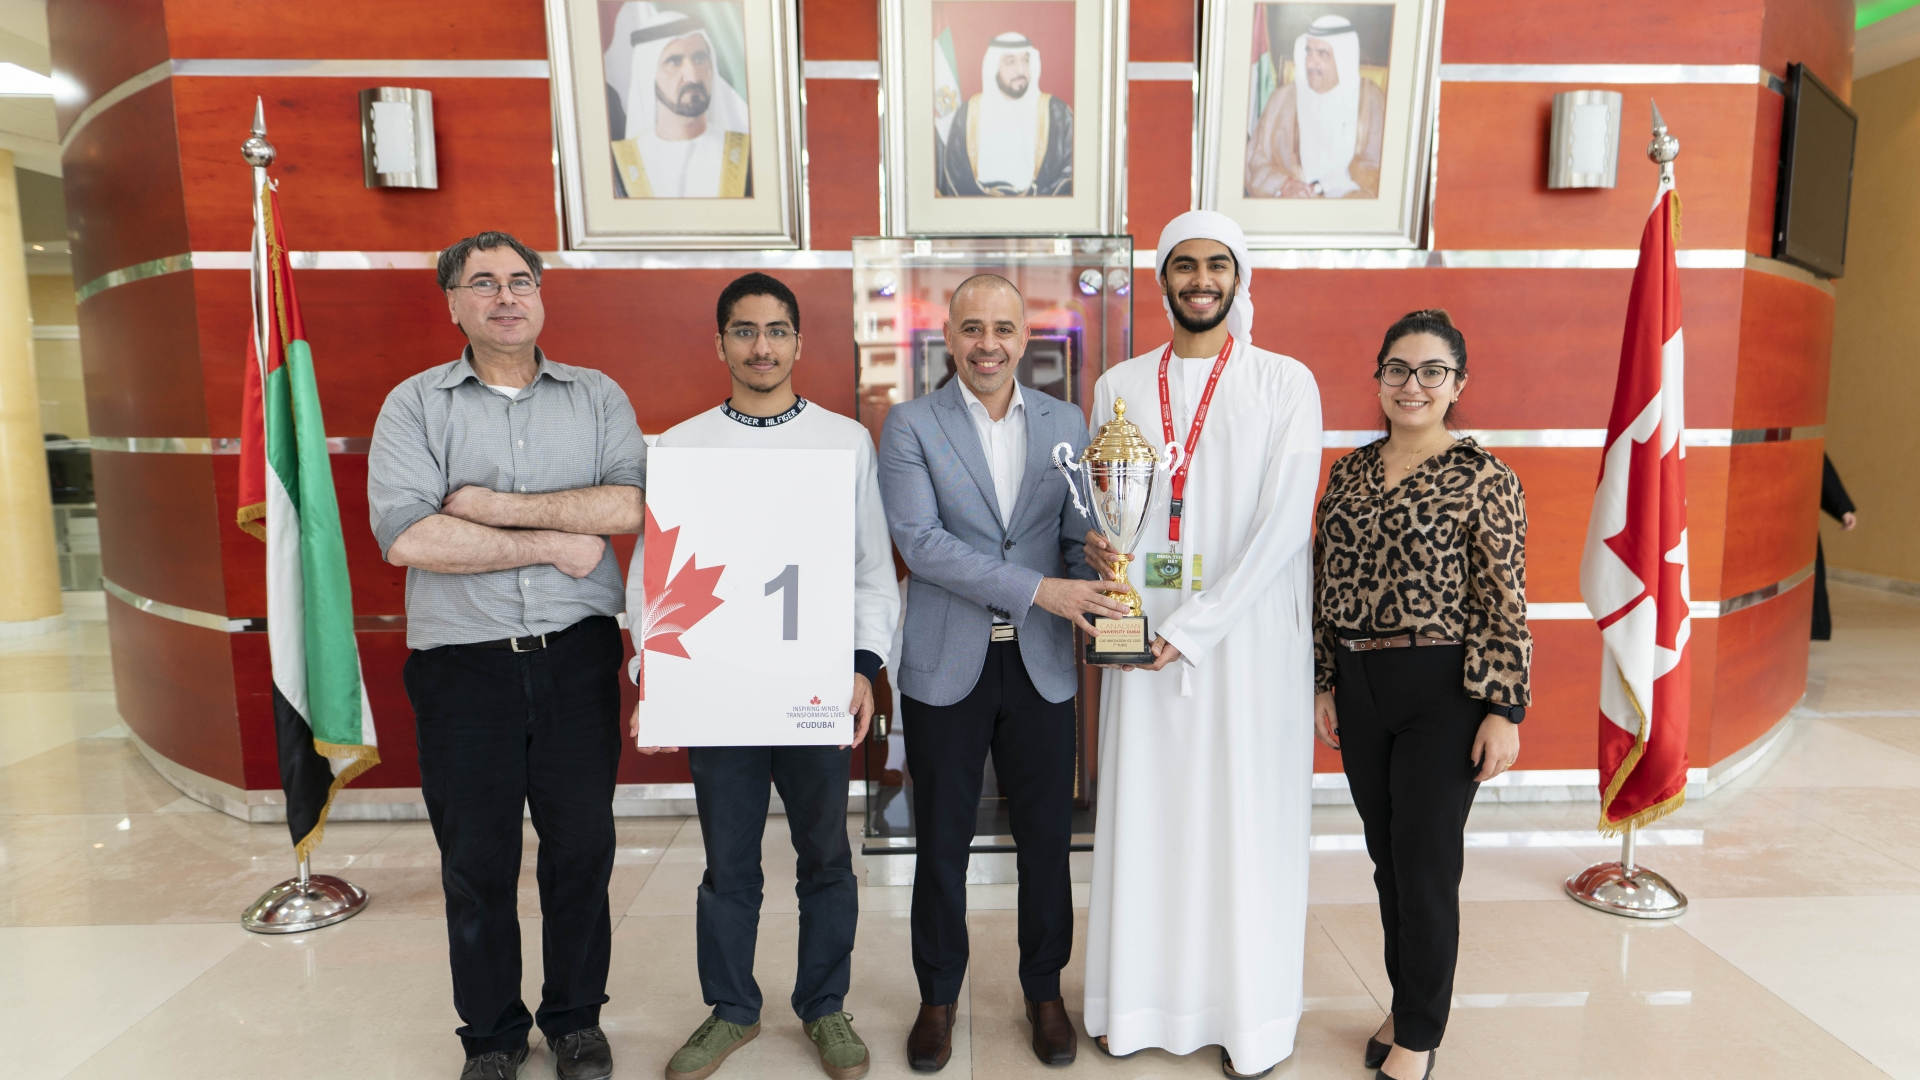 """Morshedy"", an AI powered drone equipped with Bluetooth wireless speaker, was awarded the first prize at Innovation Day celebrated at Canadian University Dubai."